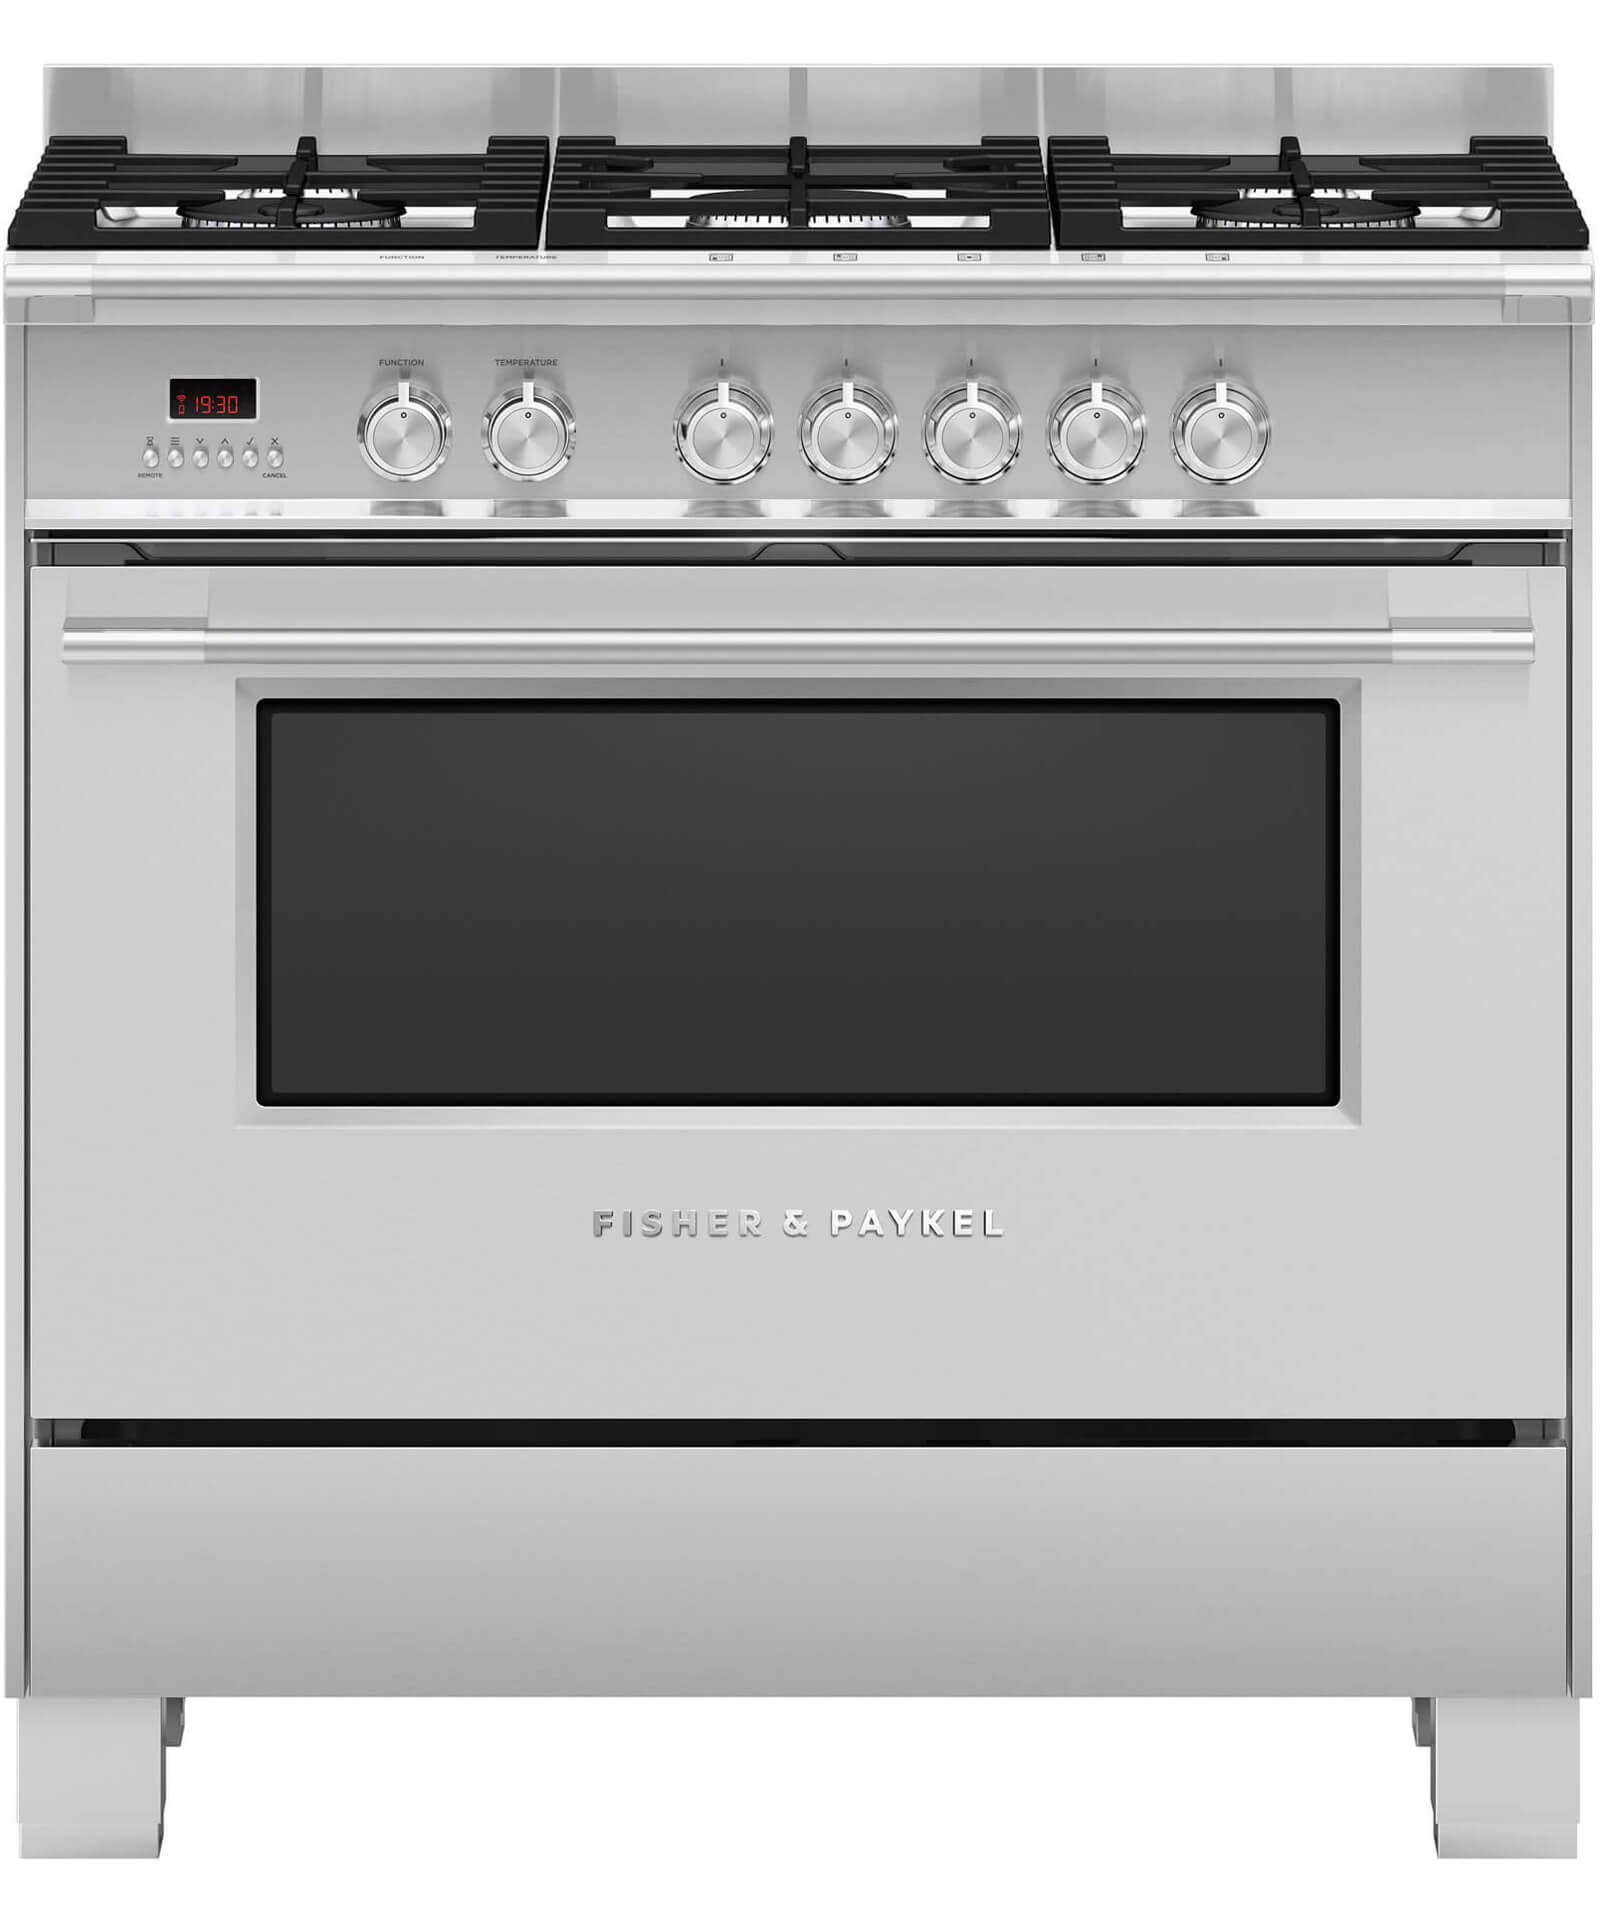 Or90scg4x1 Freestanding Dual Fuel Cooker 90cm Fisher